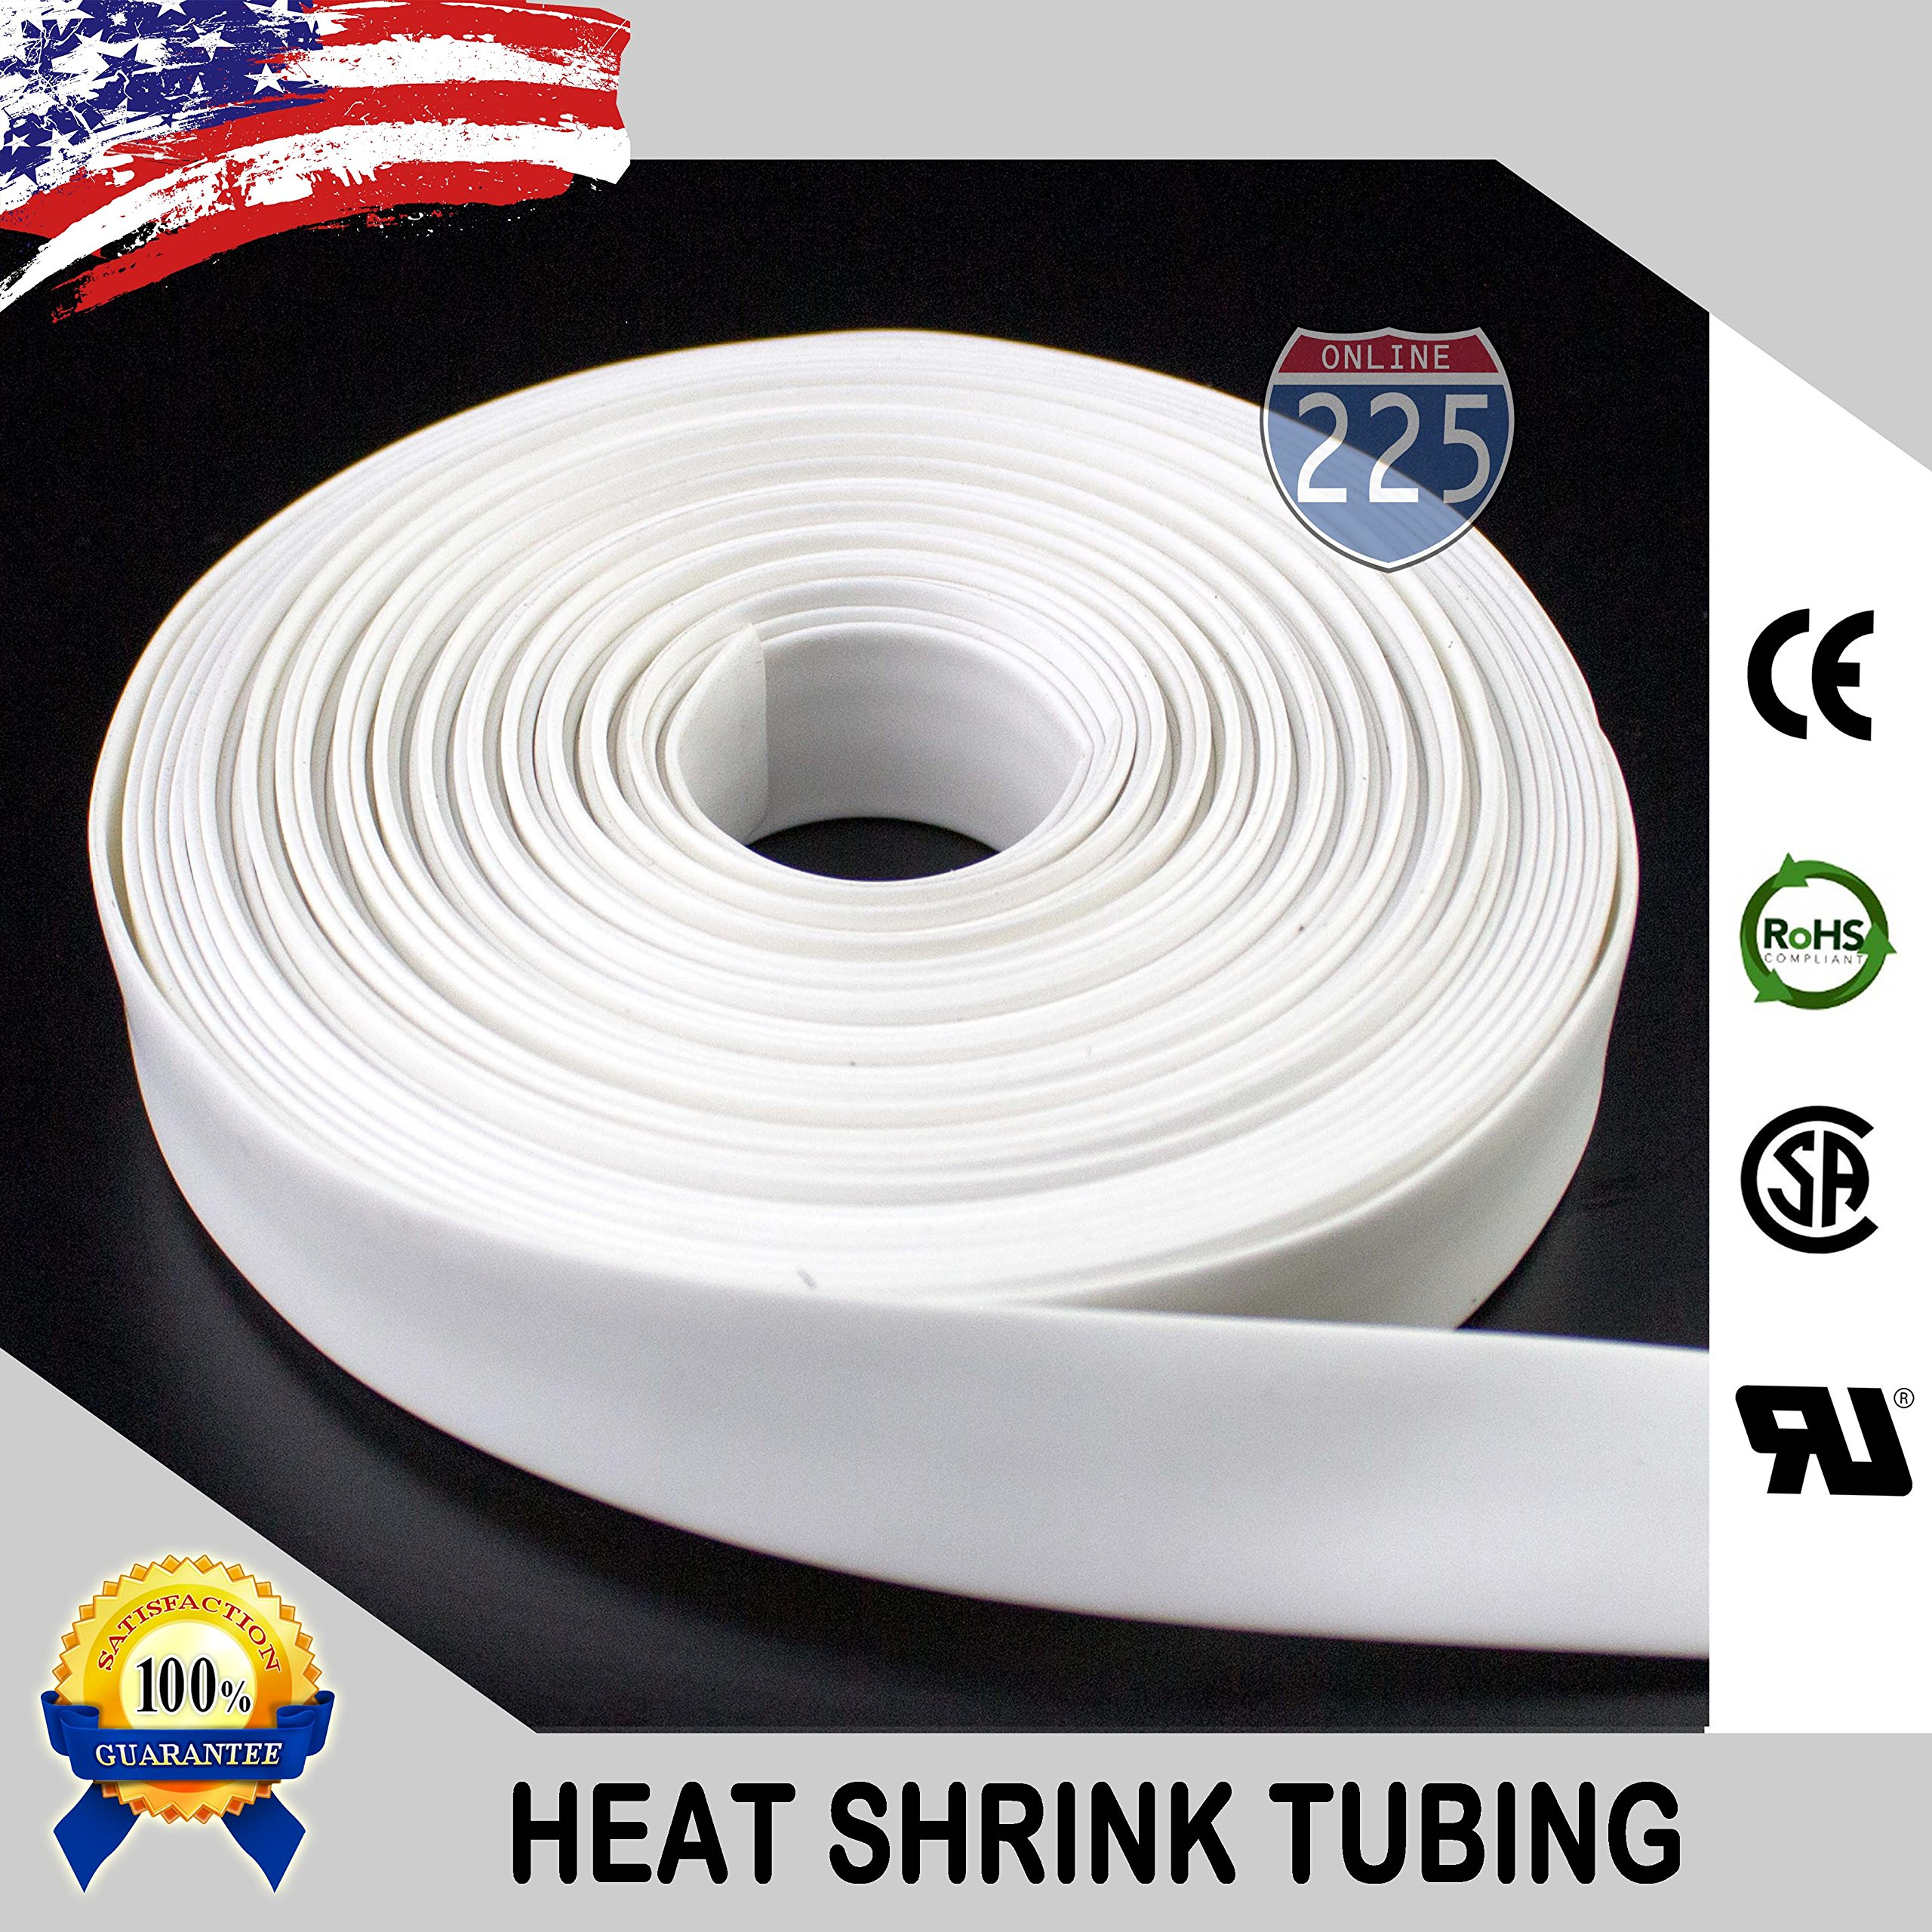 100 FT 1'' 25mm Polyolefin White Heat Shrink Tubing 2:1 Ratio